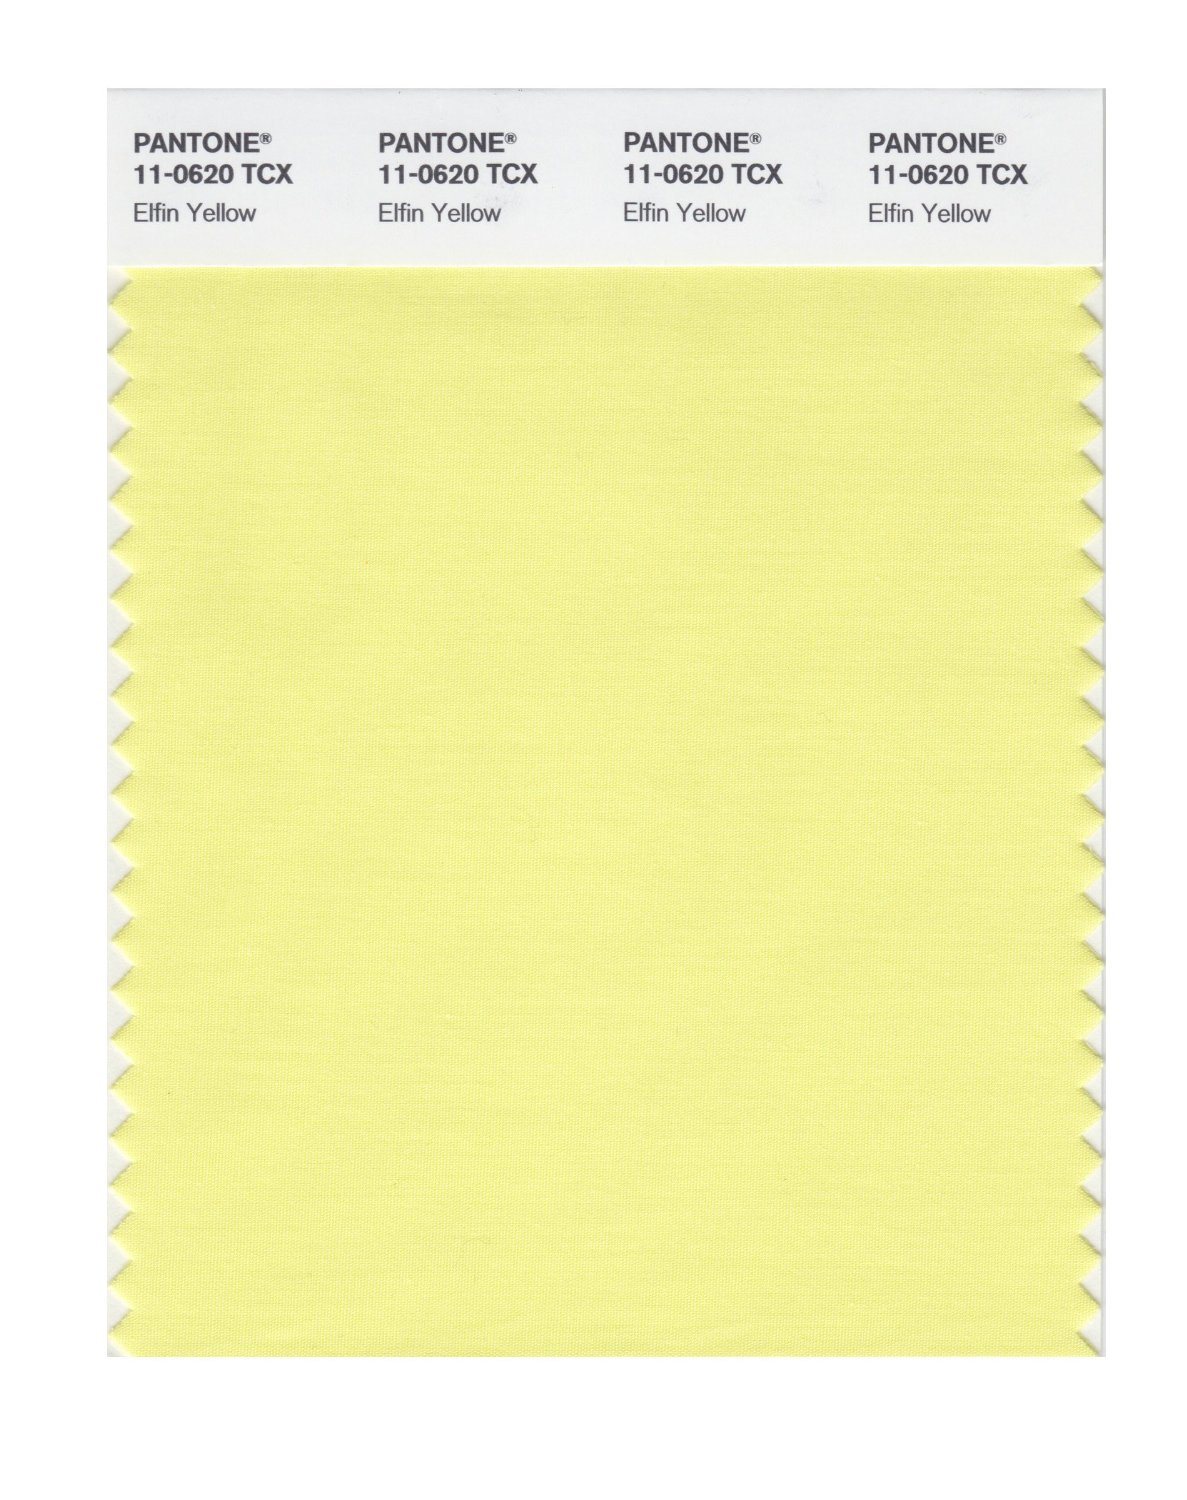 Pantone Smart Swatch 11-0620 Elfin Yellow